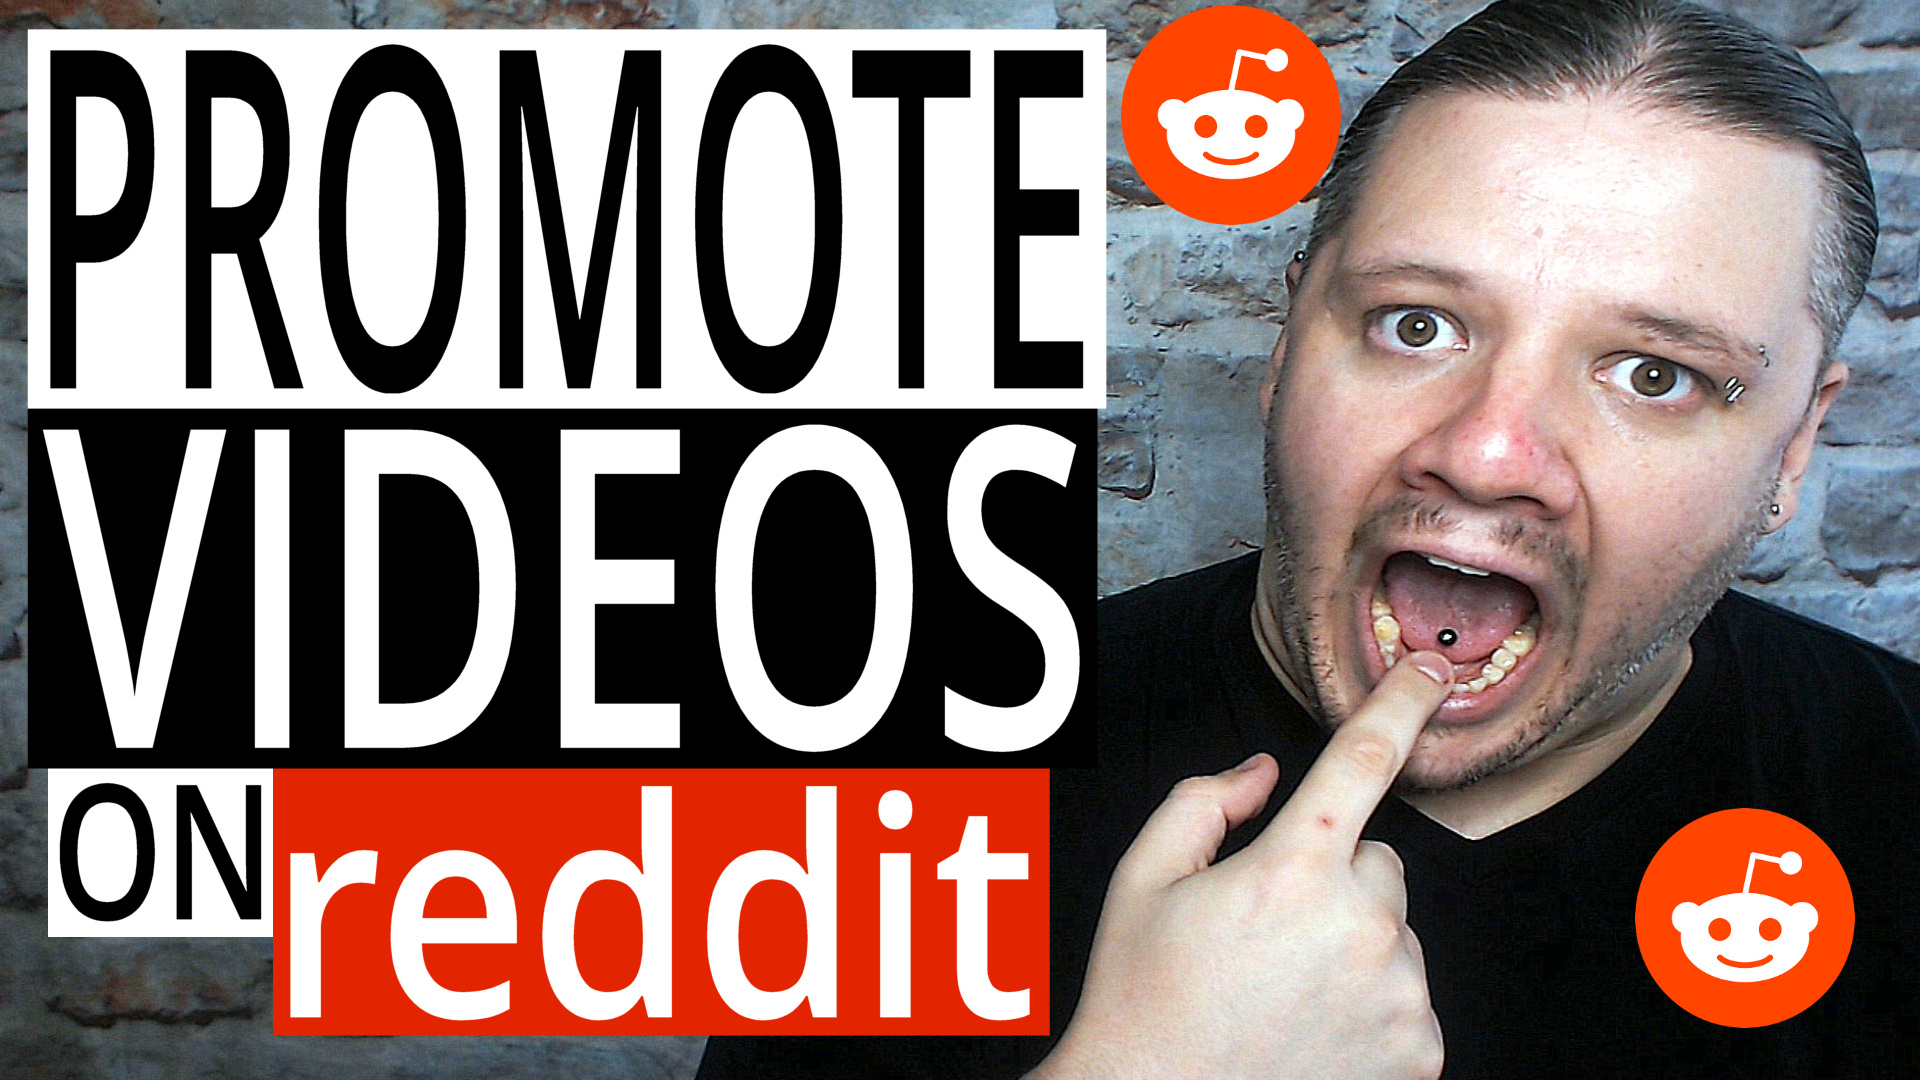 How To Promote YouTube Videos on Reddit 2018,How To Promote YouTube Videos on Reddit,how to promote your youtube videos on reddit,promote videos on reddit,reddit how to promote videos,reddit,how to share on reddit,how to post on reddit,how to promote your channel on reddit,How To Promote YouTube Videos on Reddit 2019,reddit step by step,how to use reddit for youtube,how to use reddit,how to promote your videos on reddit,share on reddit,youtube on reddit,how to